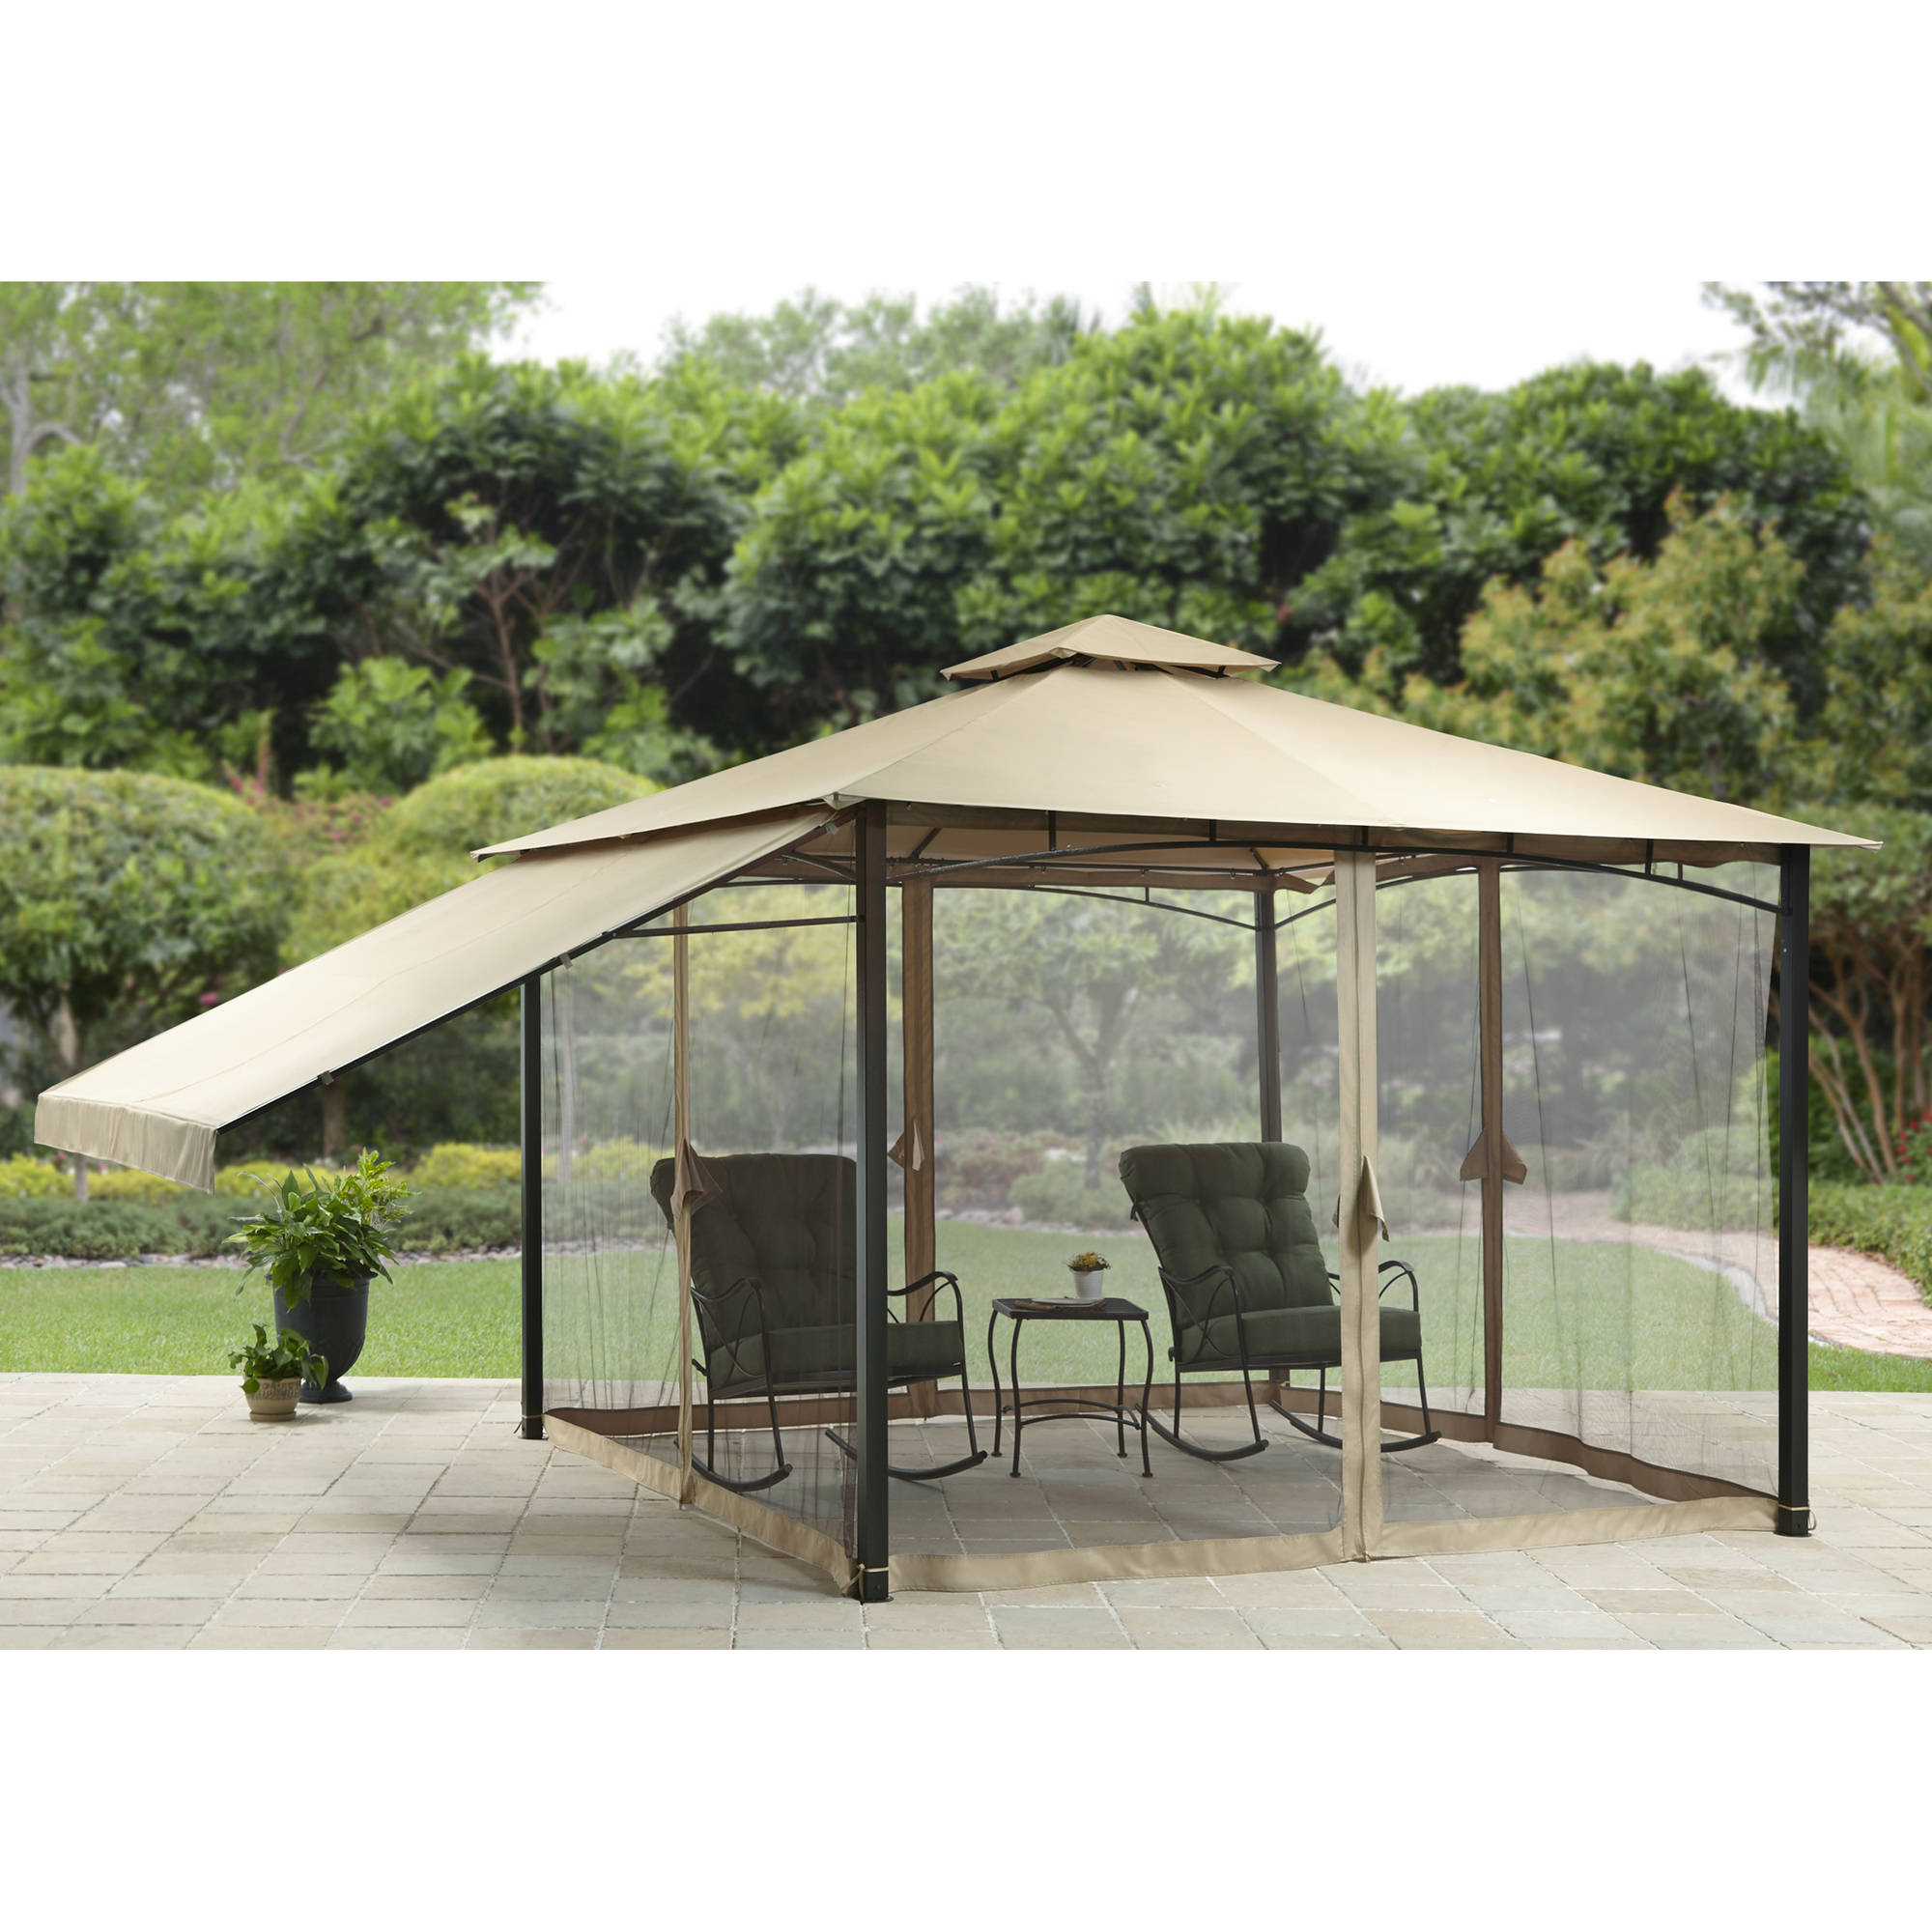 Better Homes and Garden Canal Drive 11' x 11' Cabin Style Gazebo with Adjustable Side